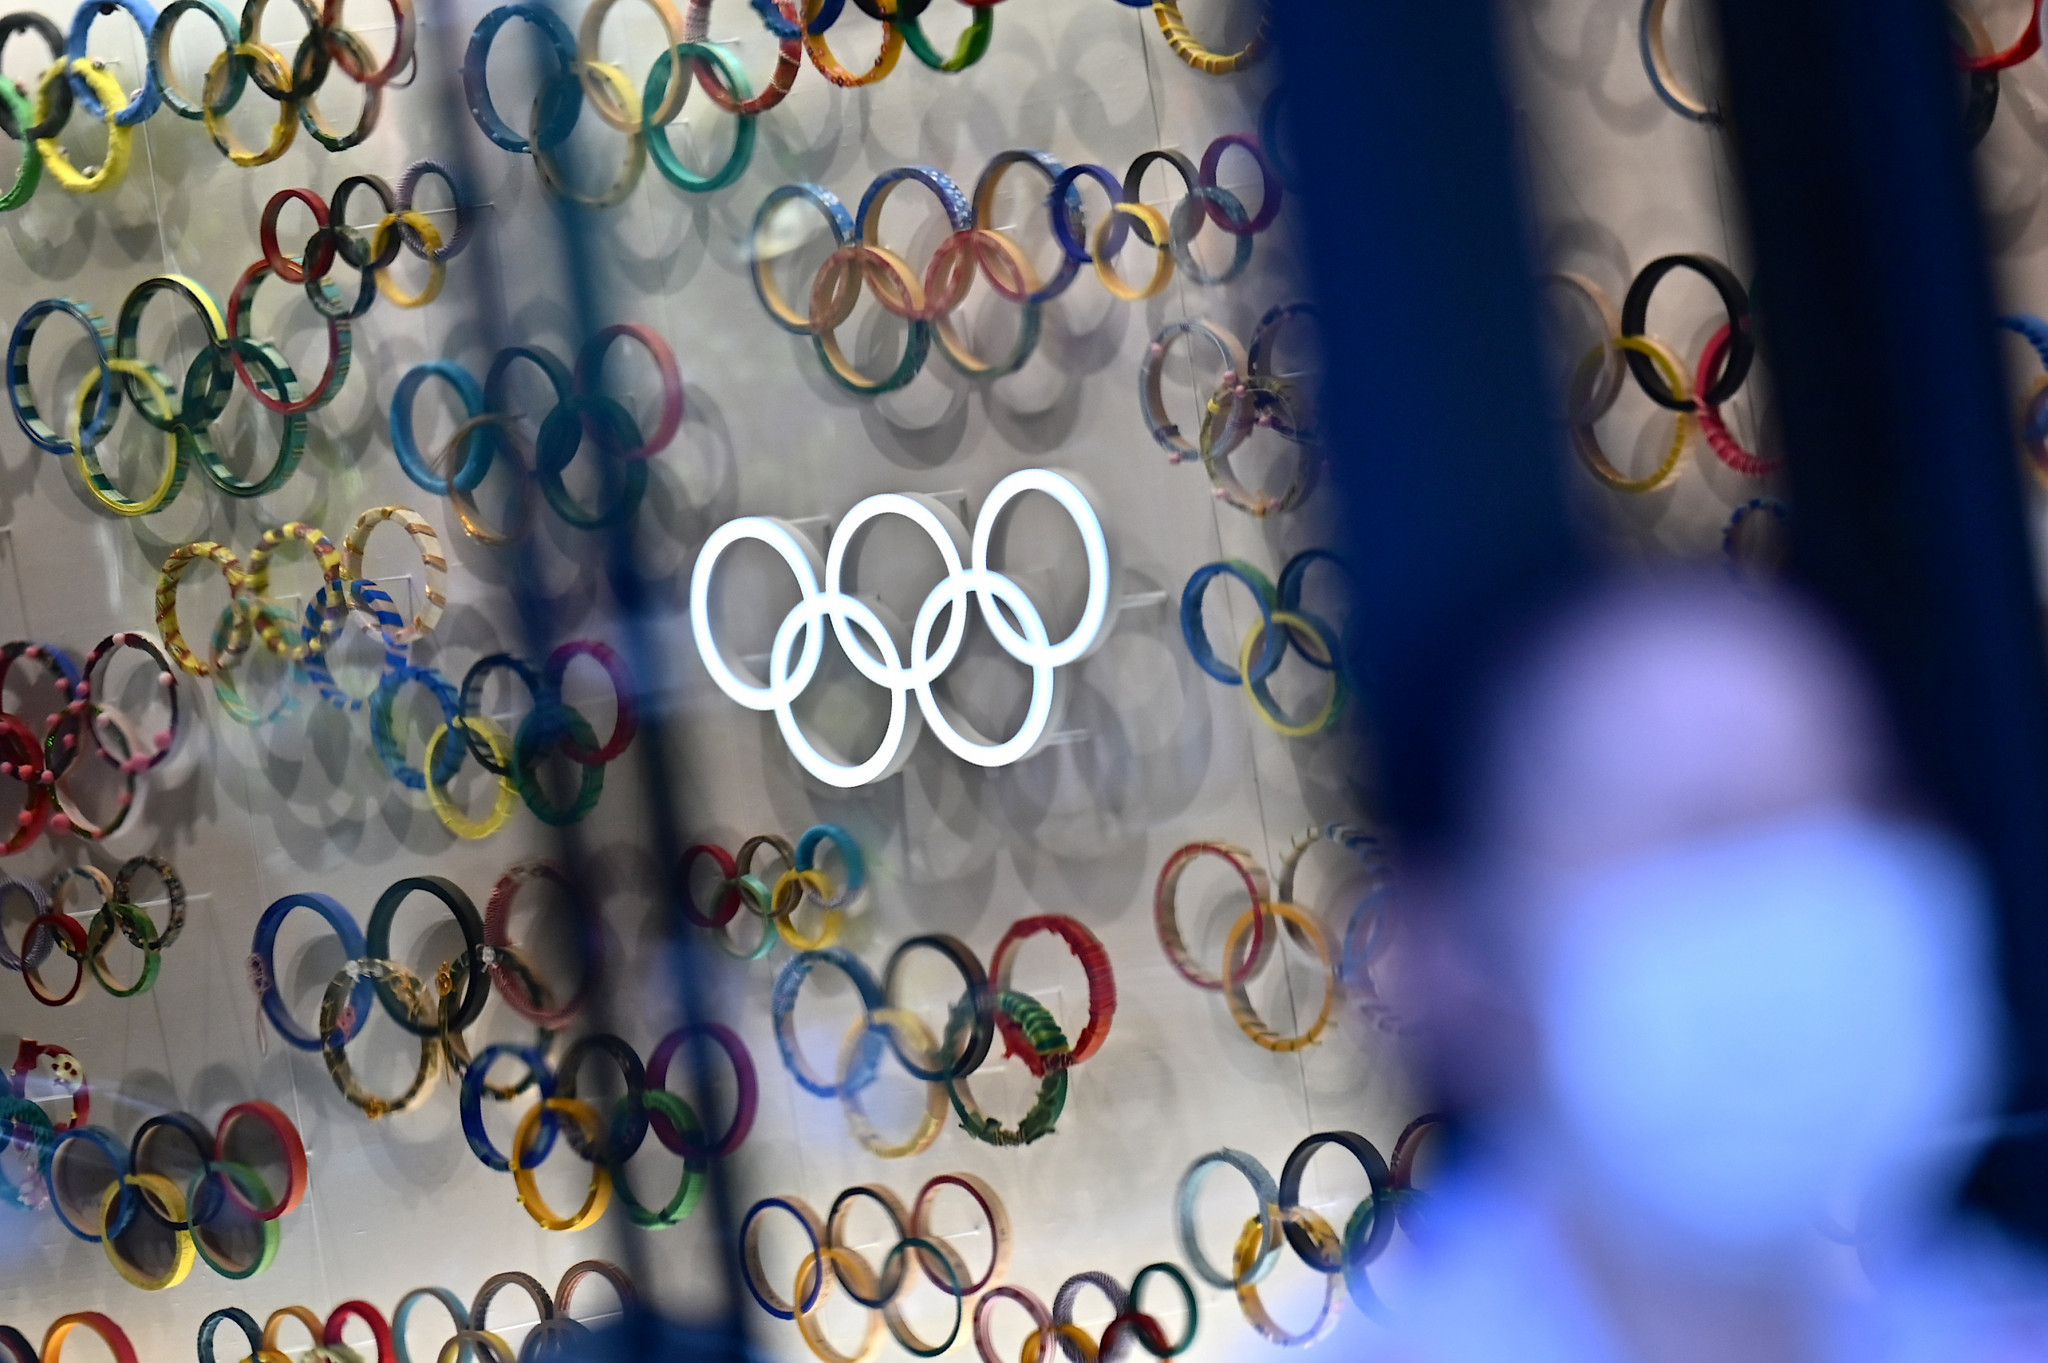 Tokyo 2020 has reached a basic agreement to extend domestic partner contracts ©Getty Images